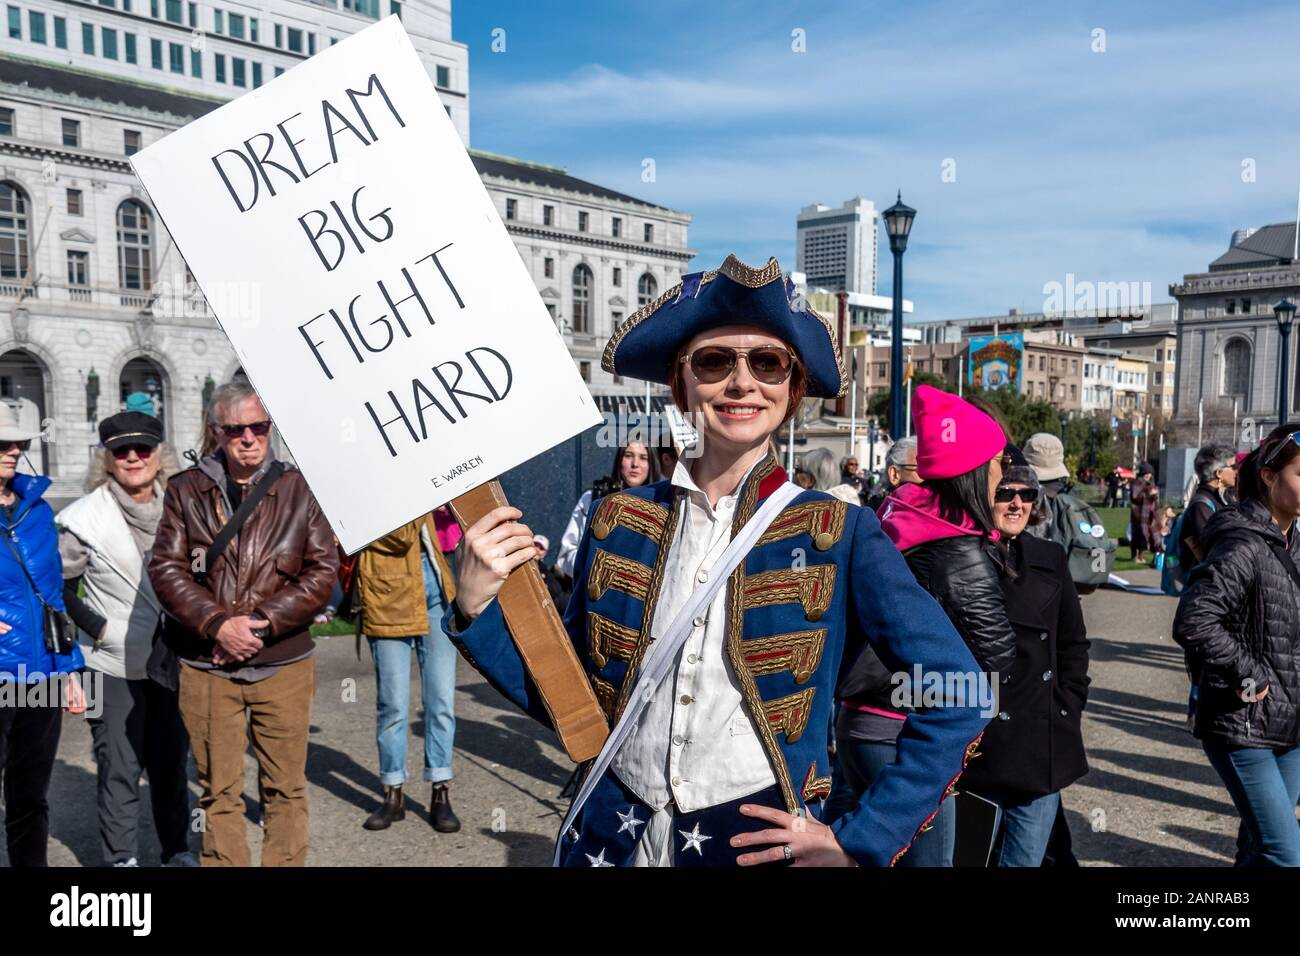 """San Francisco, USA. 18th January, 2020. The 4th annual Women's March San Francisco, California. A woman dressed in 1776 costume holds a sign reading, """"Dream big, fight hard,"""" an Elizabeth Warren campaign slogan. Stock Photo"""